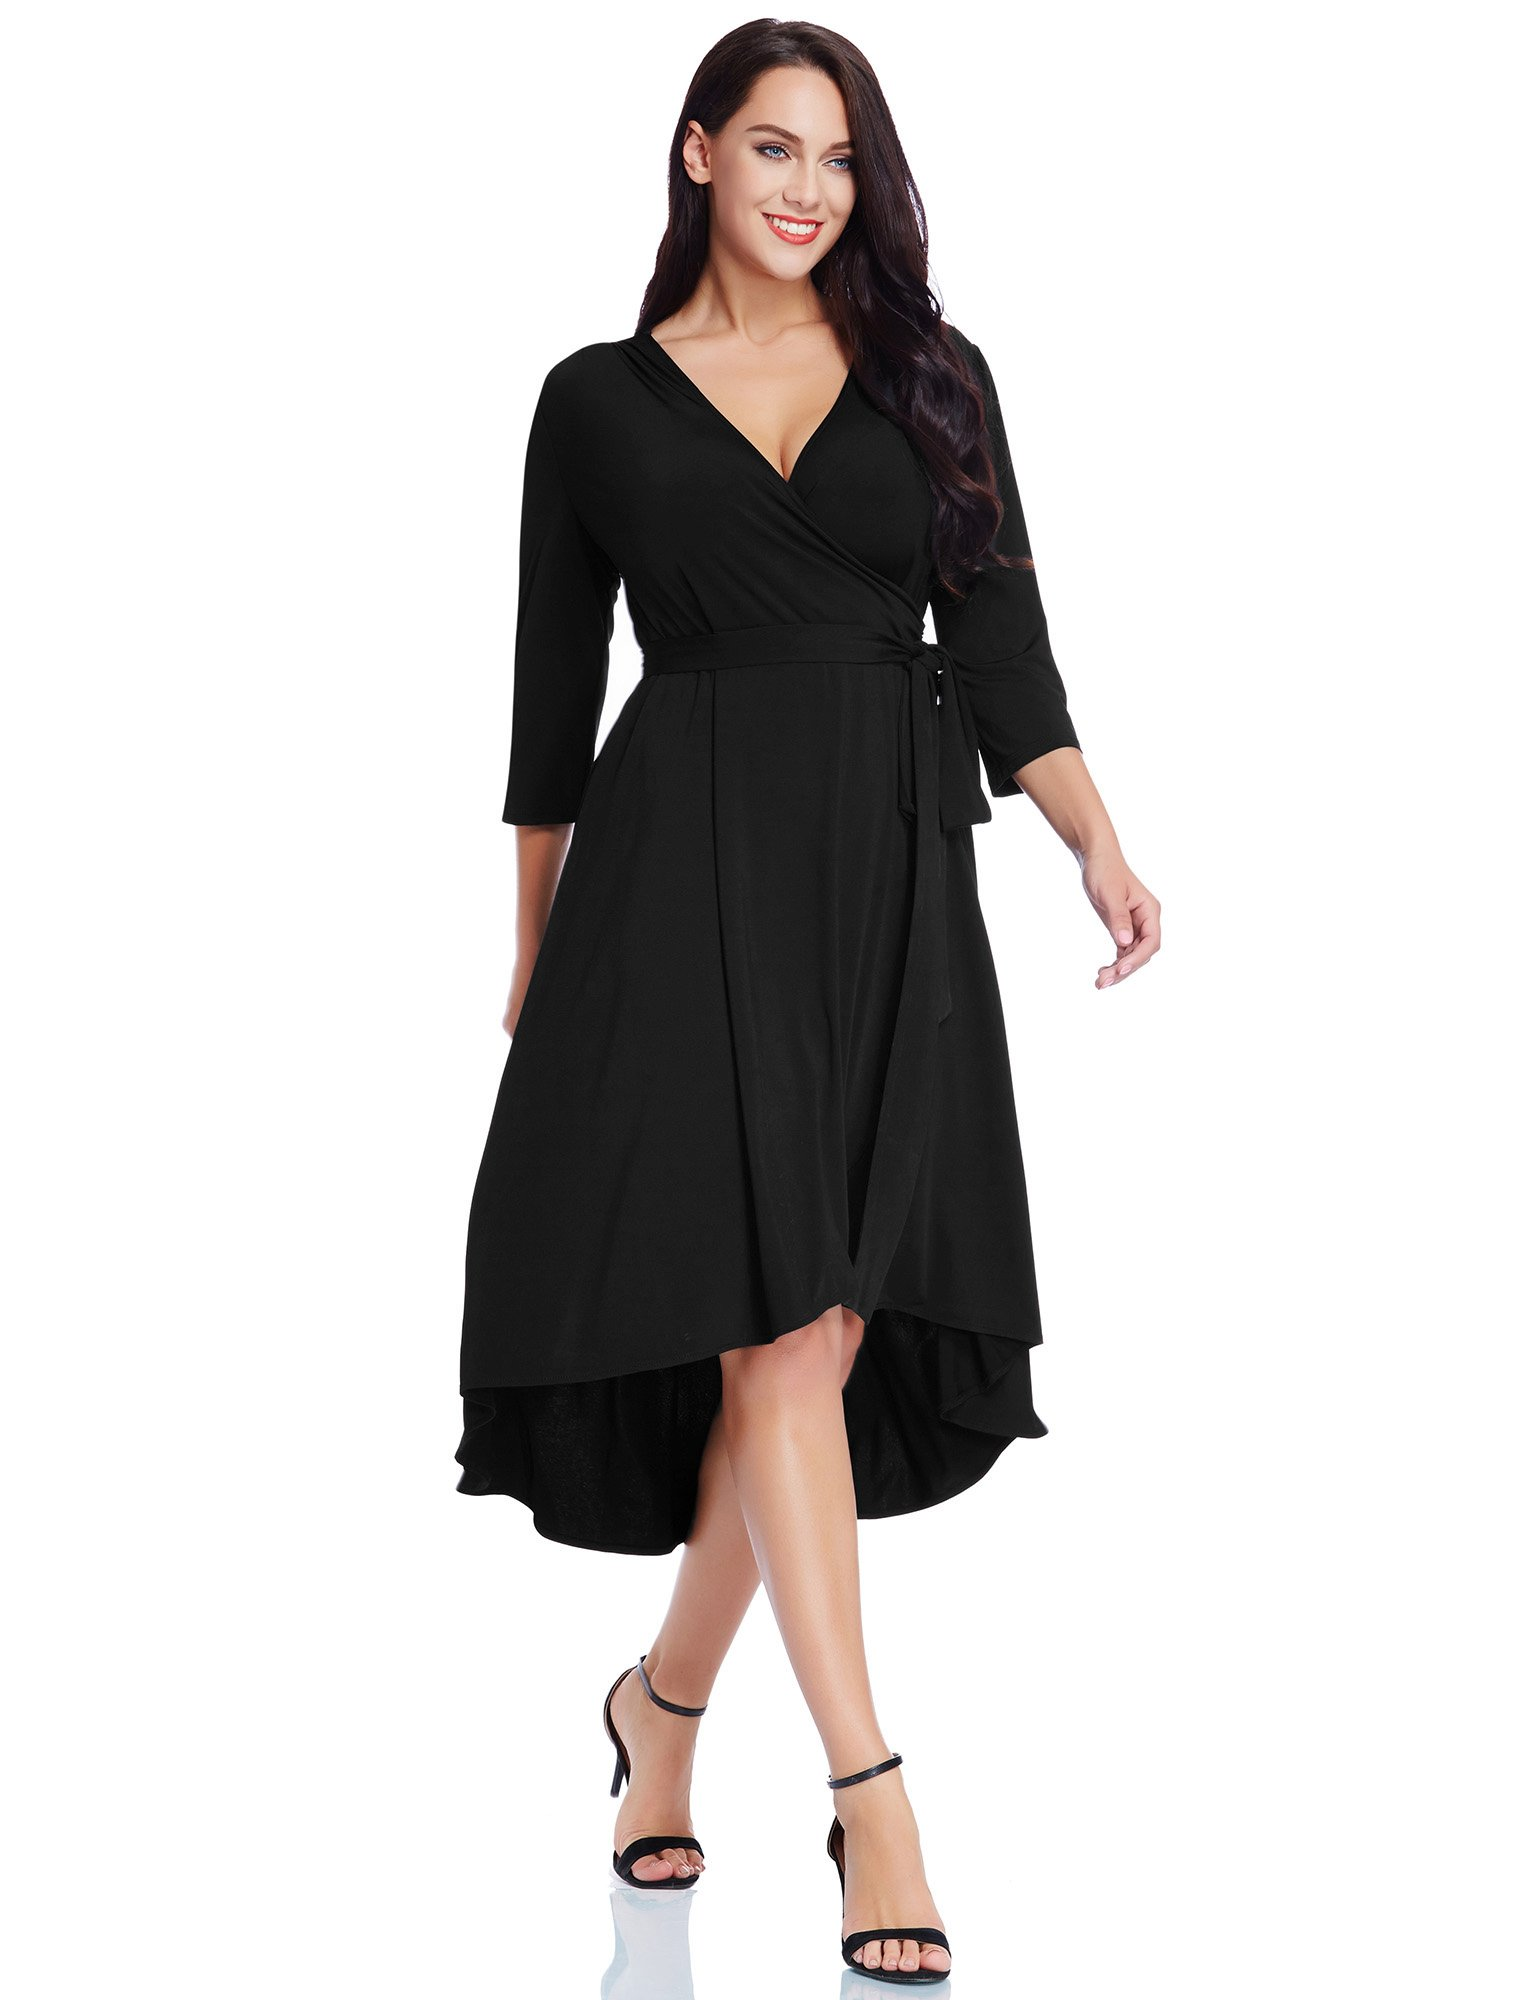 GRAPENT Women's Plus Size Solid V Neck Knee Length 3/4 Sleeve Hi Lo True Wrap Dress Surplice Flared Skirt Black Size 1X